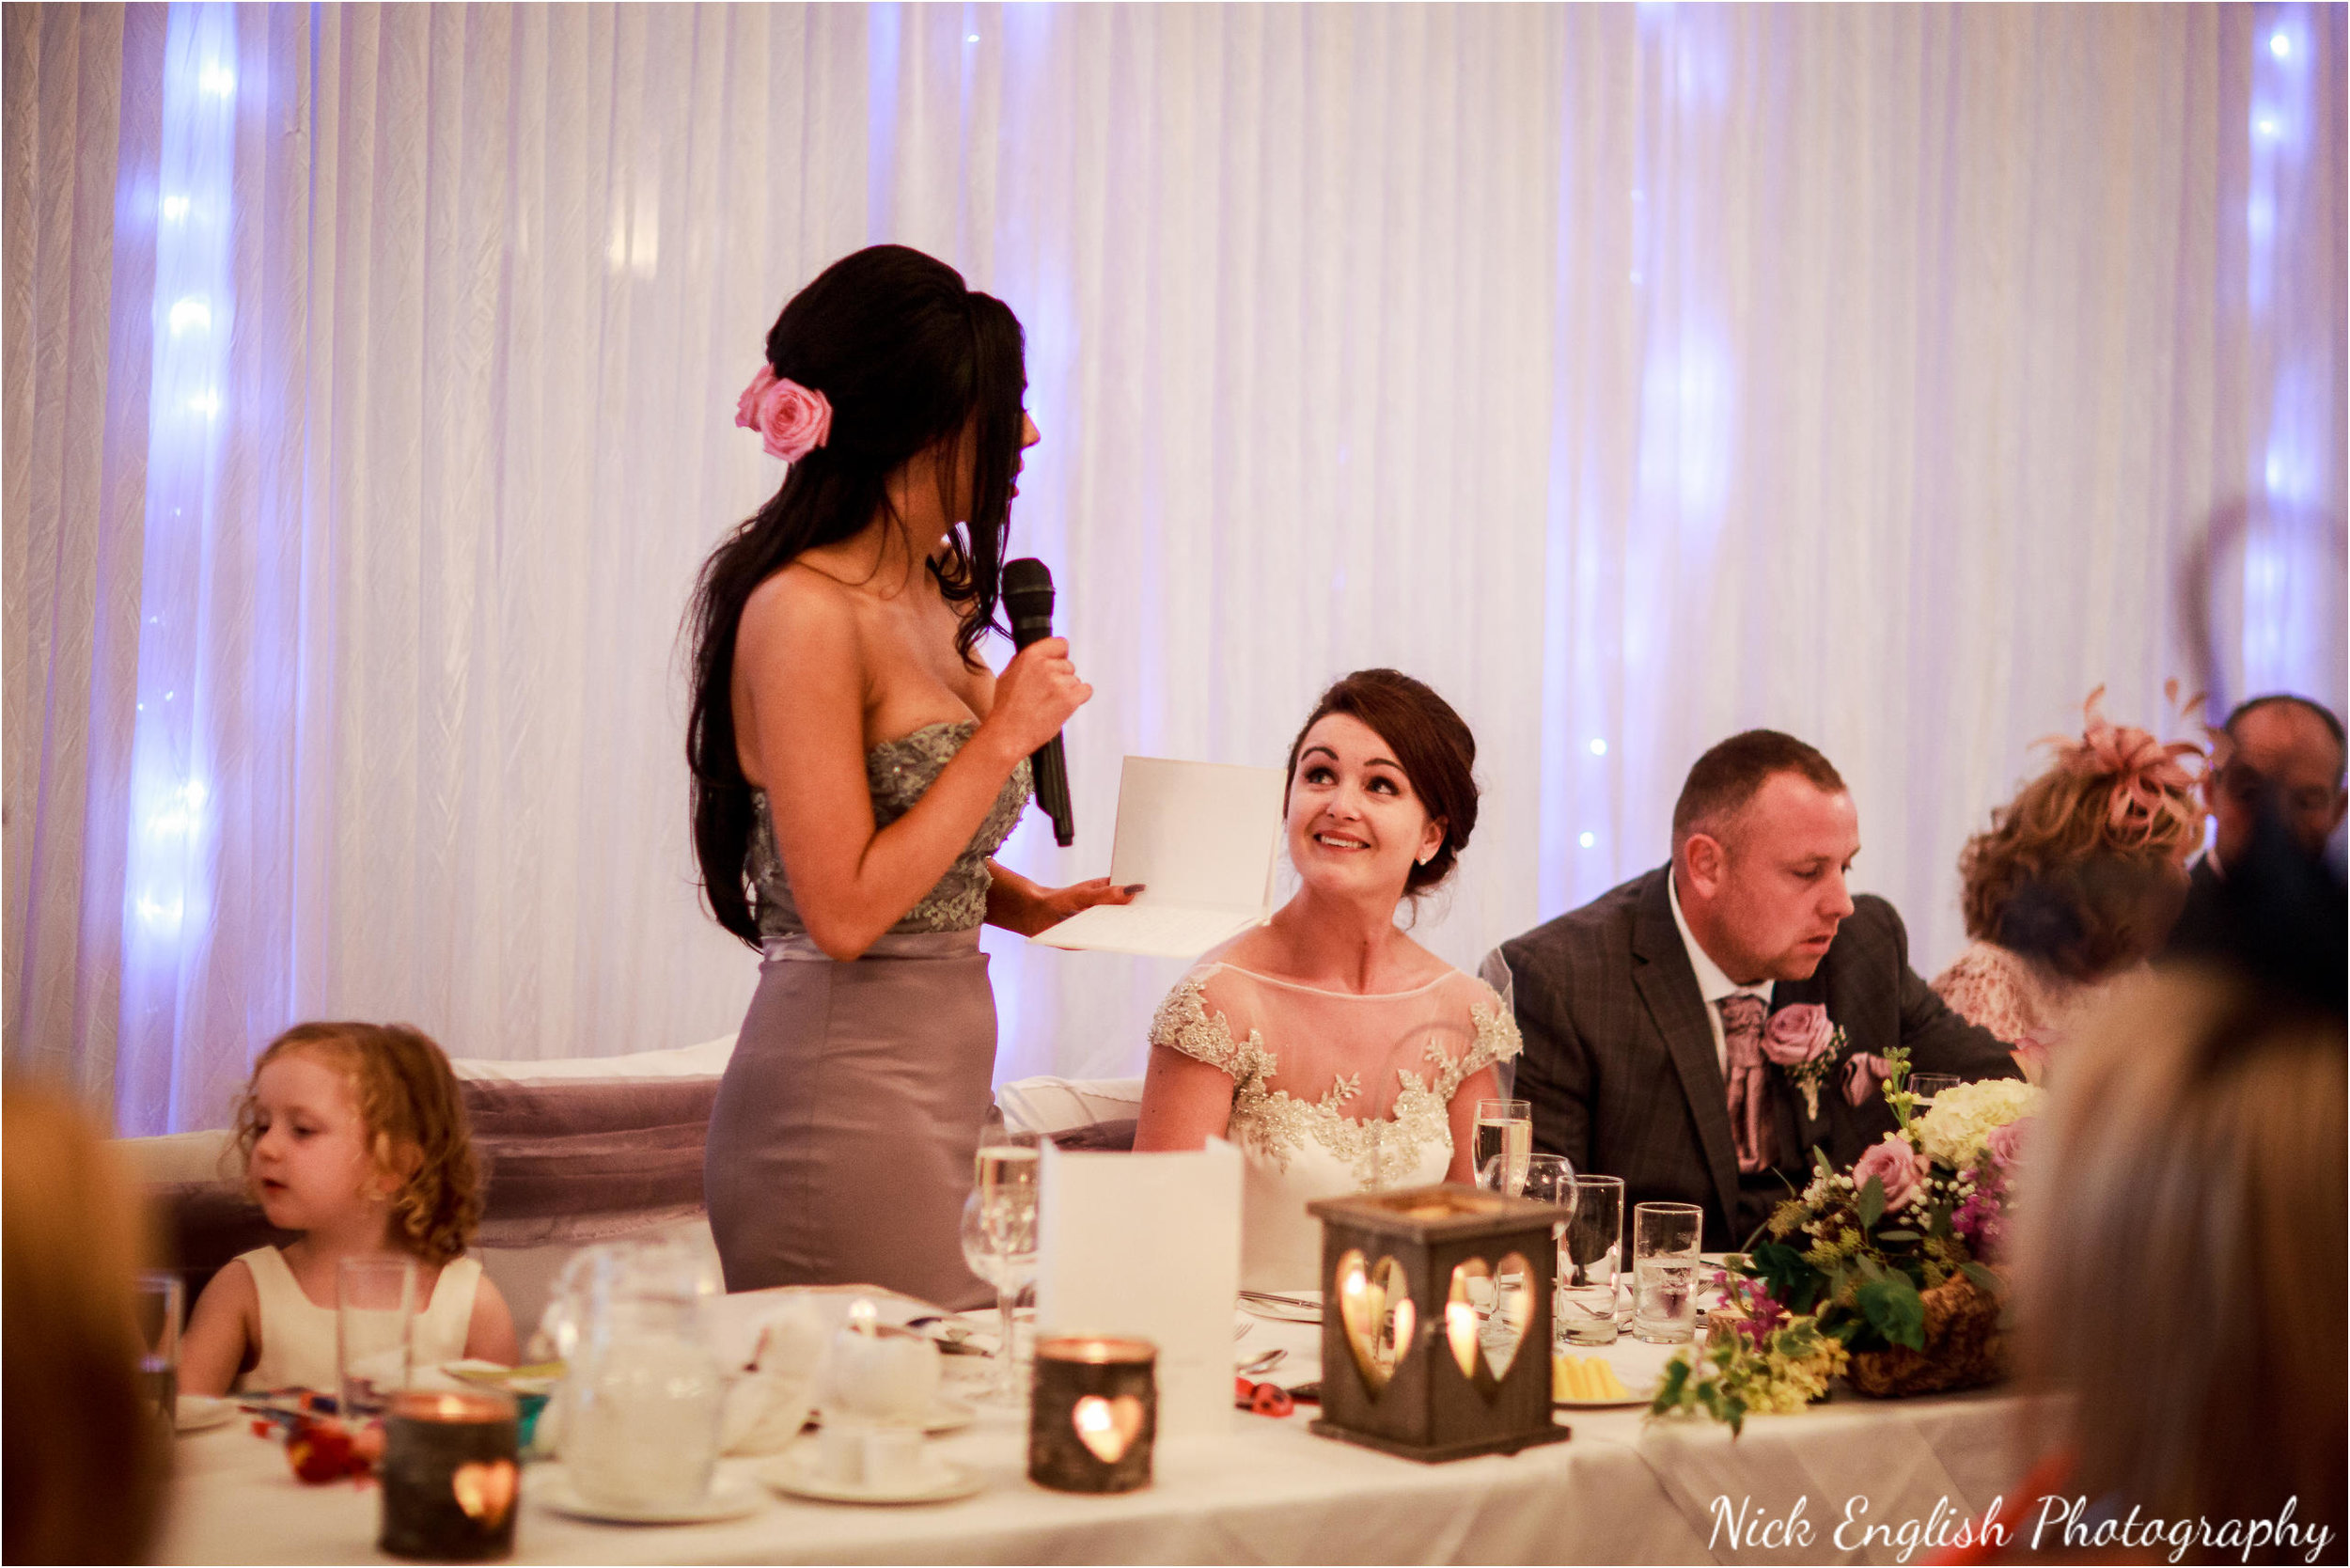 Stacey-Ash-Wedding-Photographs-Stanley-House-Preston-Lancashire-149.jpg